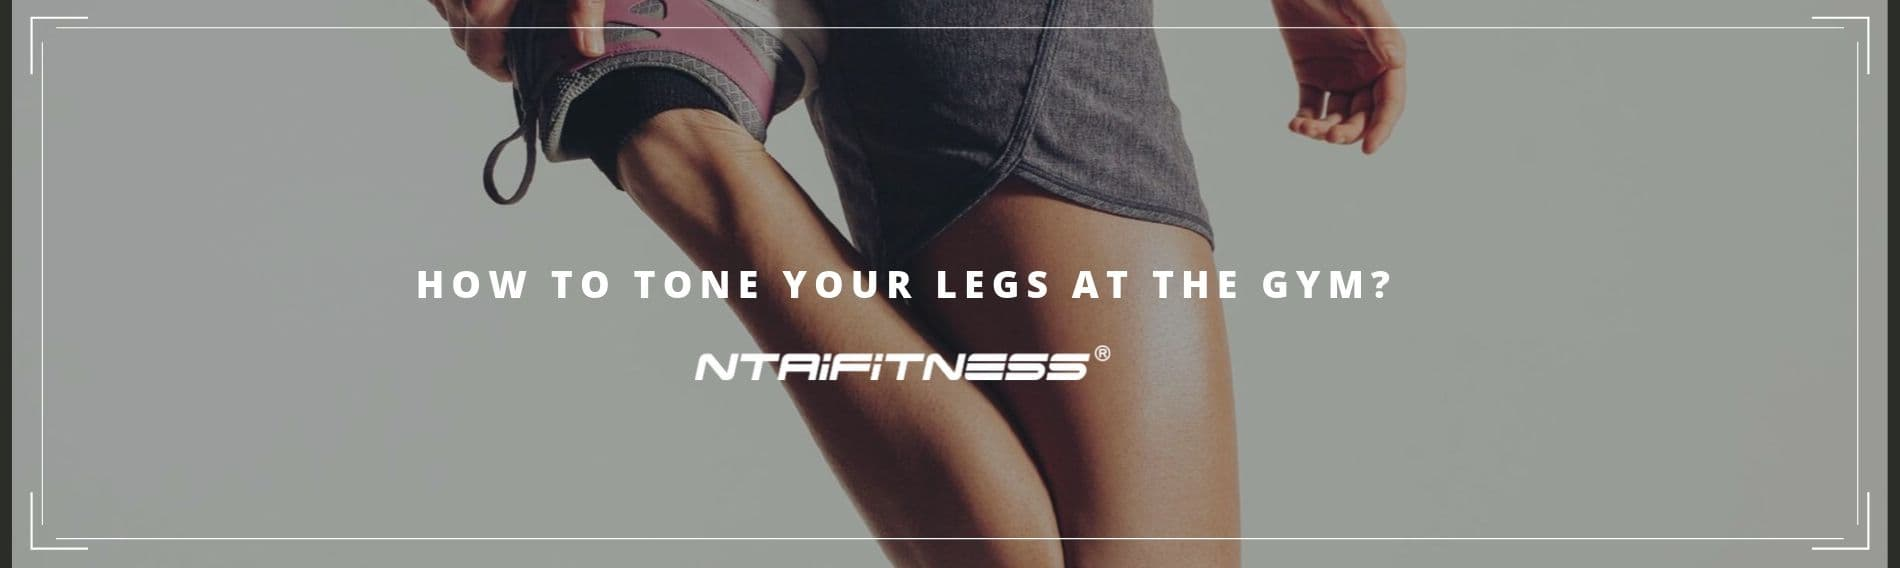 How To Tone Your Legs At The Gym